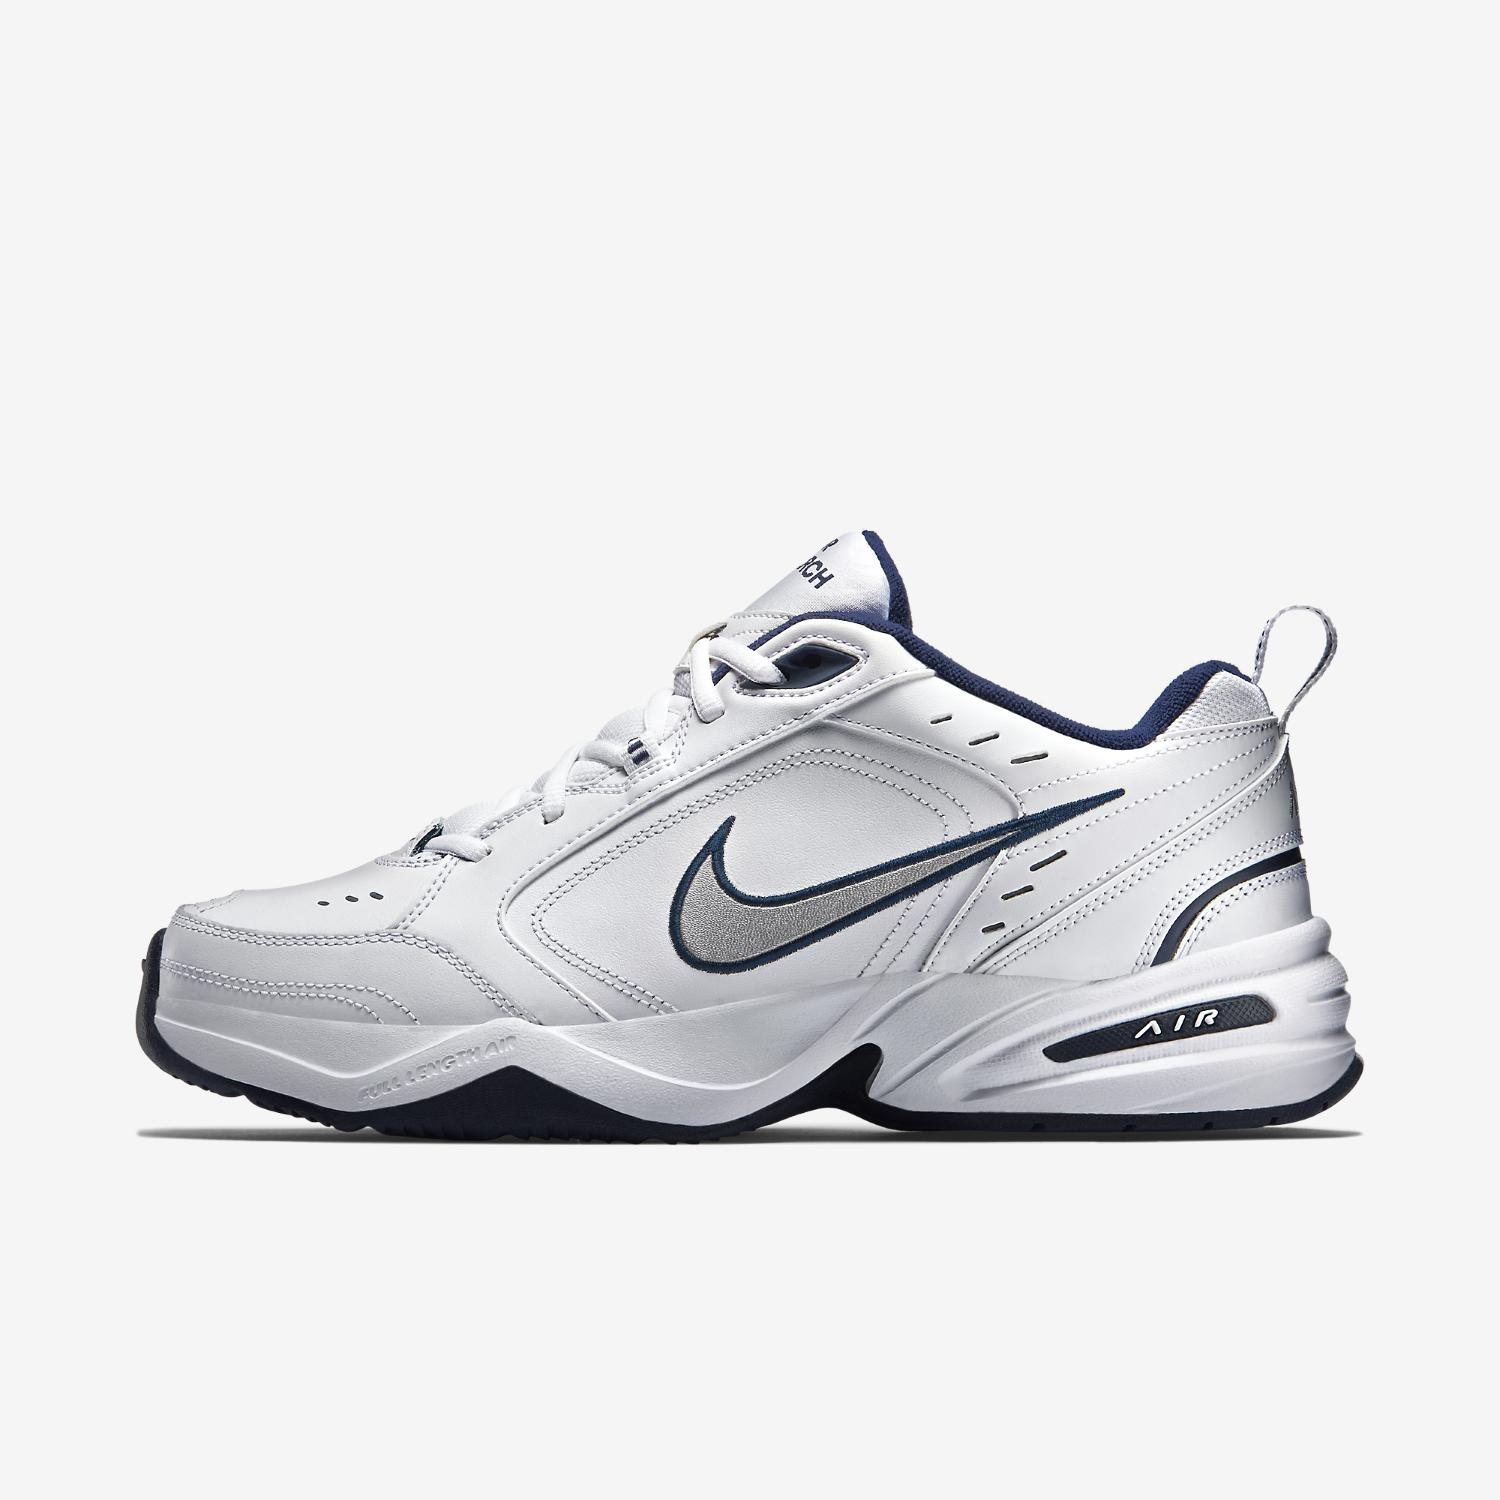 9d4c148ba04 Men s White Air Monarch Iv Gym lifestyle Shoes